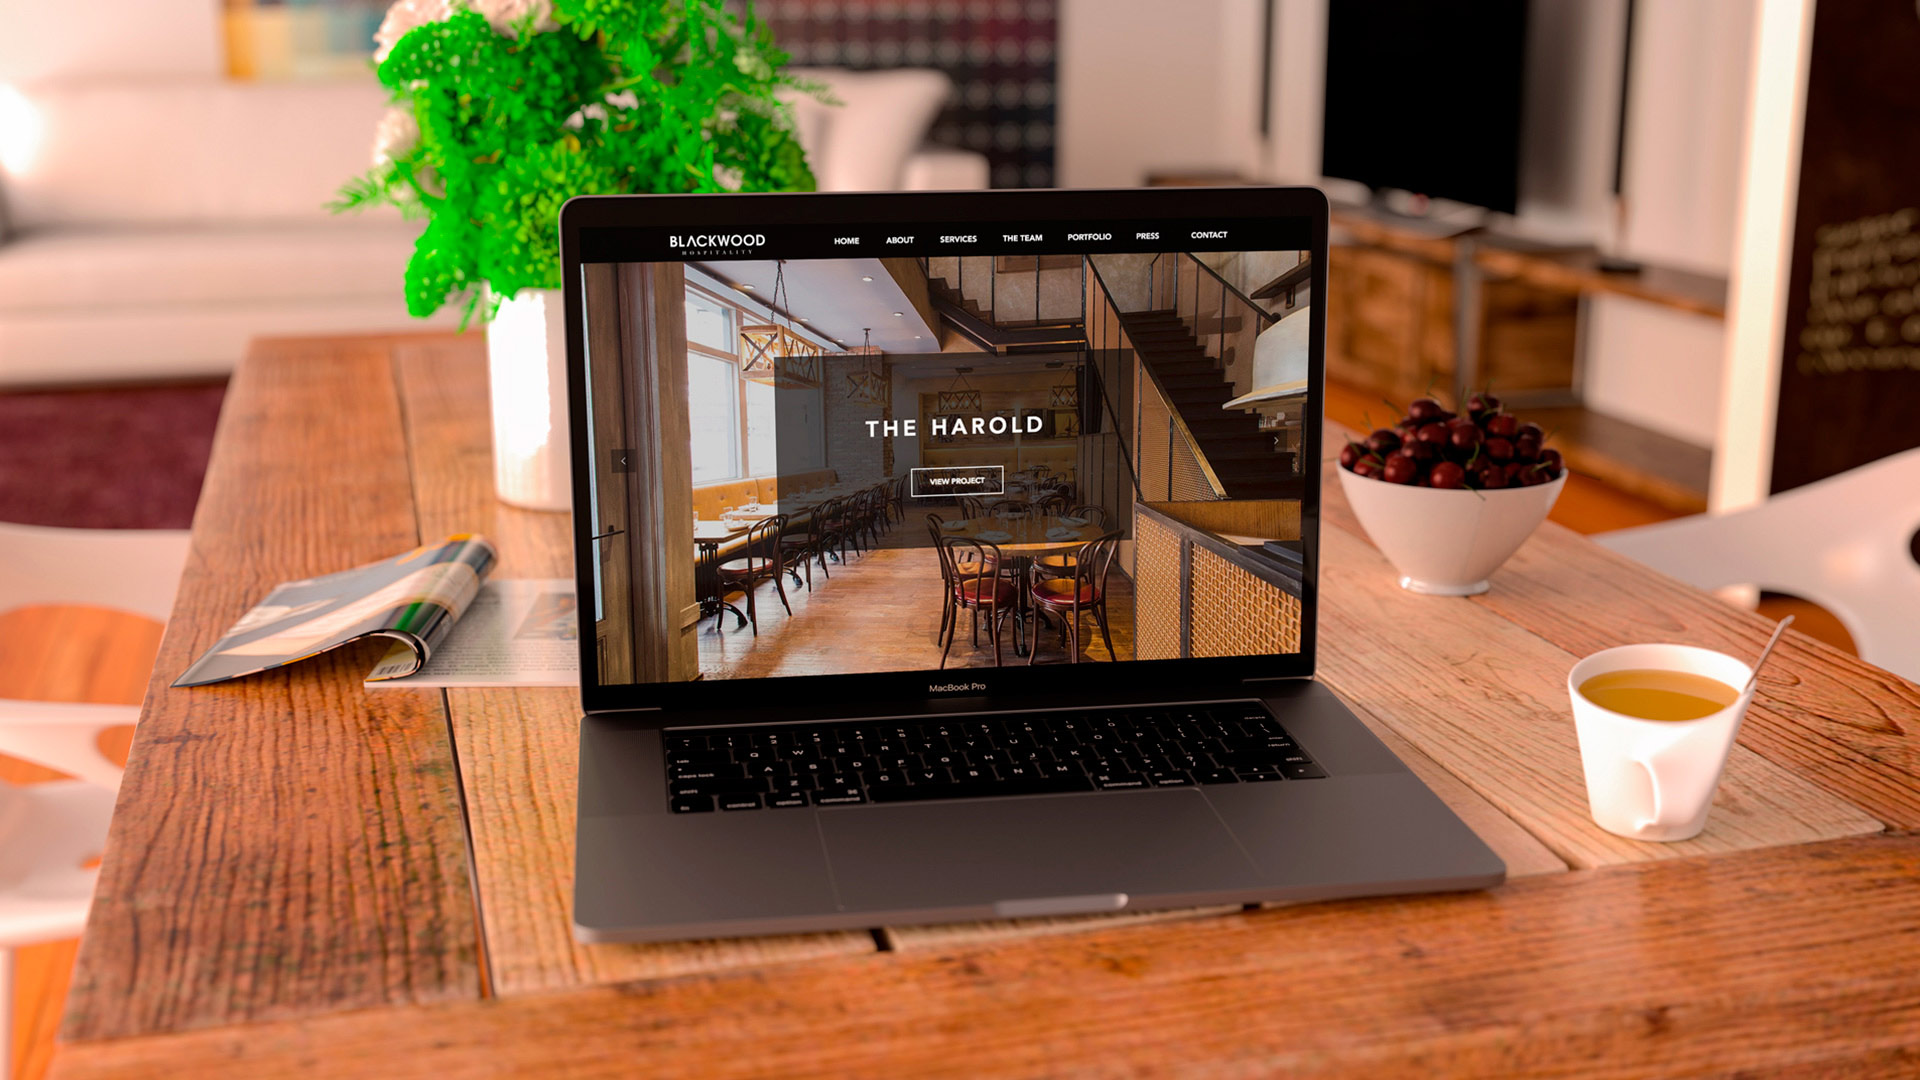 Blackwood Hospitality website design laptop in kitchen